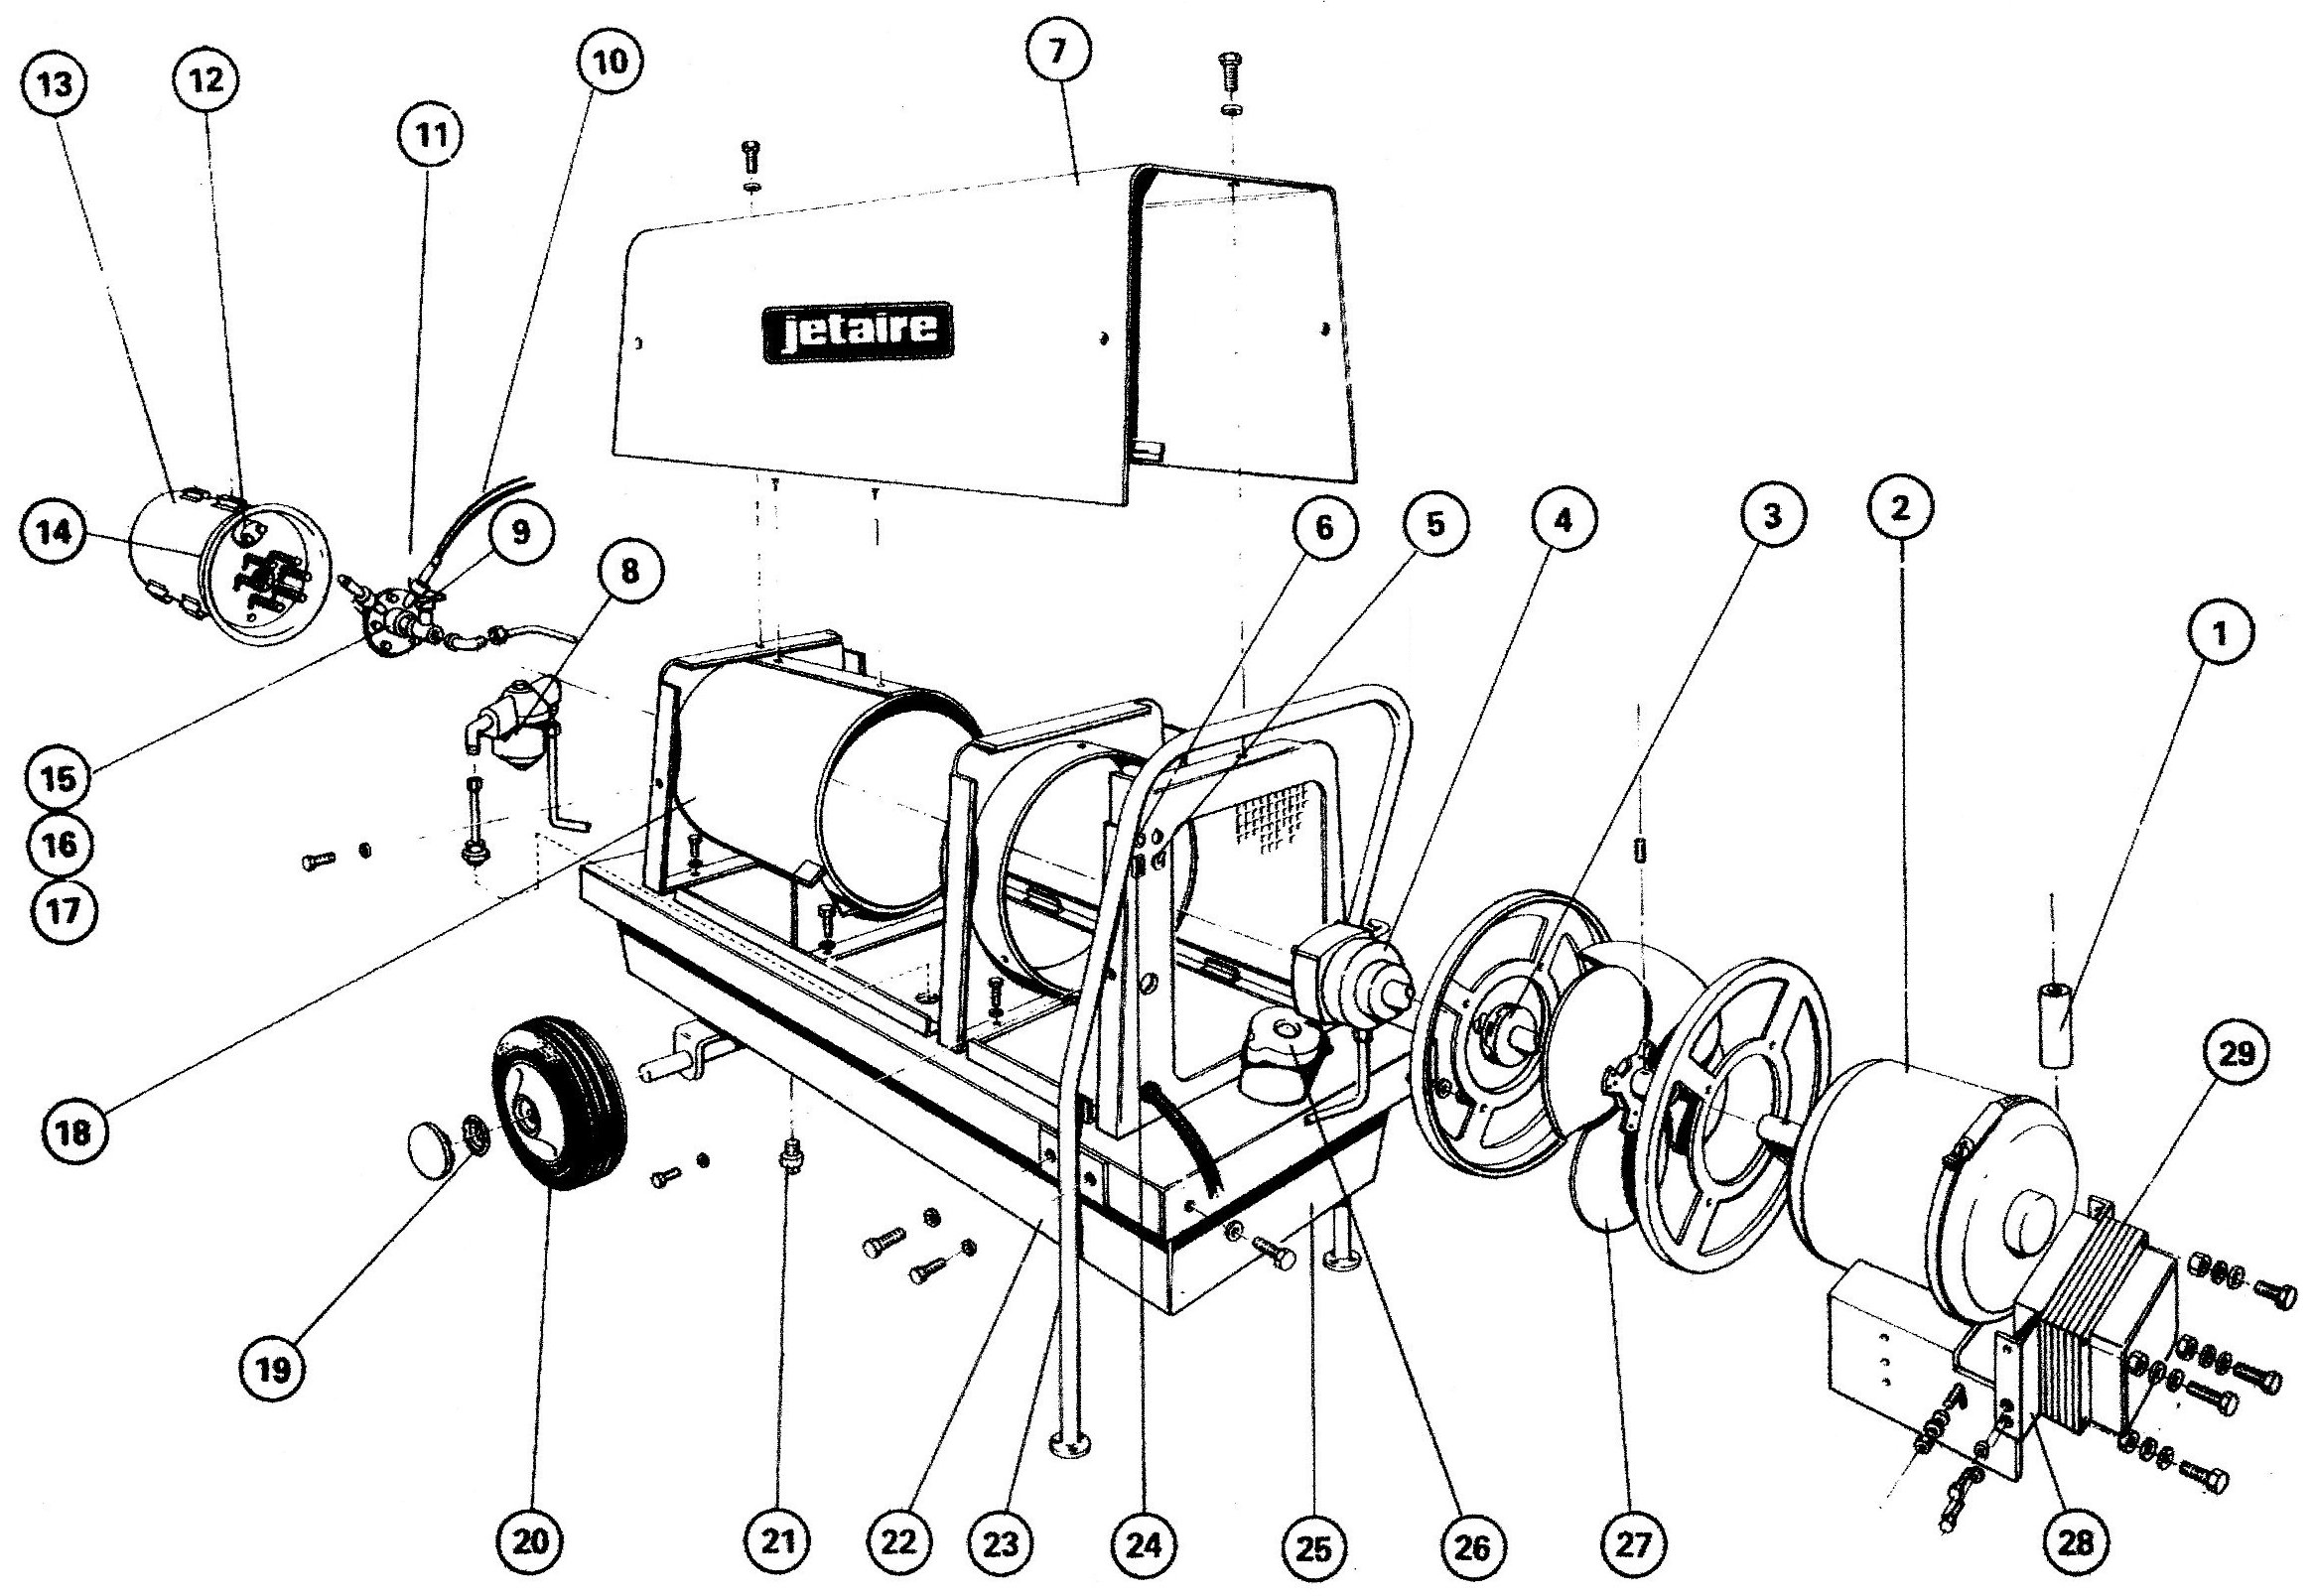 Jetaire D110m Exploded View